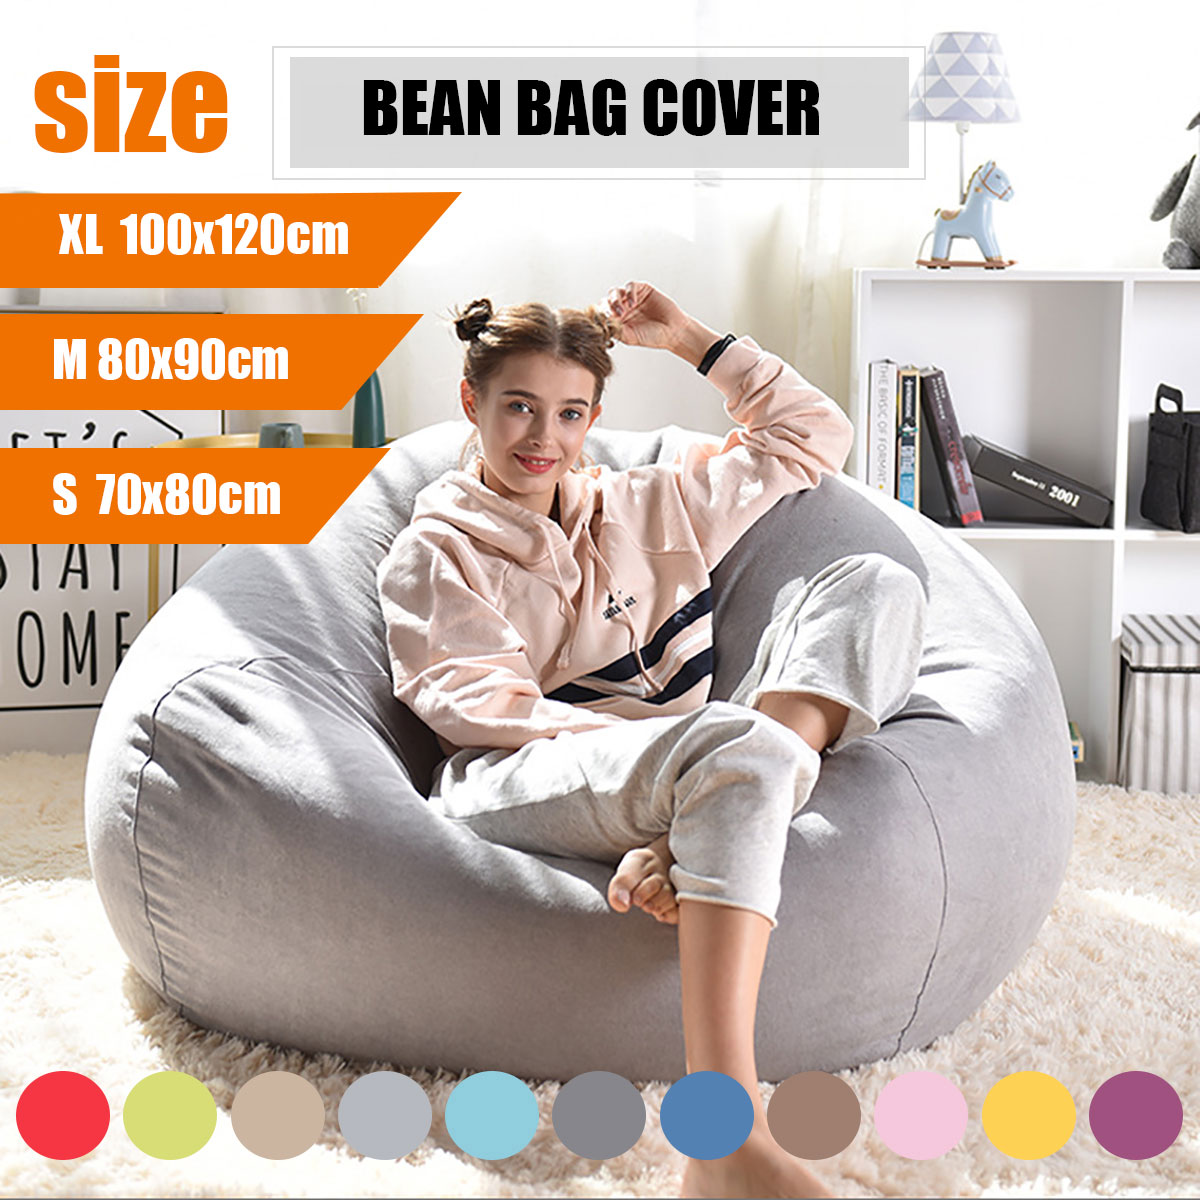 Bean-Bag Chair Sofas-Cover Lounger-Seat Tatami-Puff Couch No-Filler Lazy Linen Para Sala title=